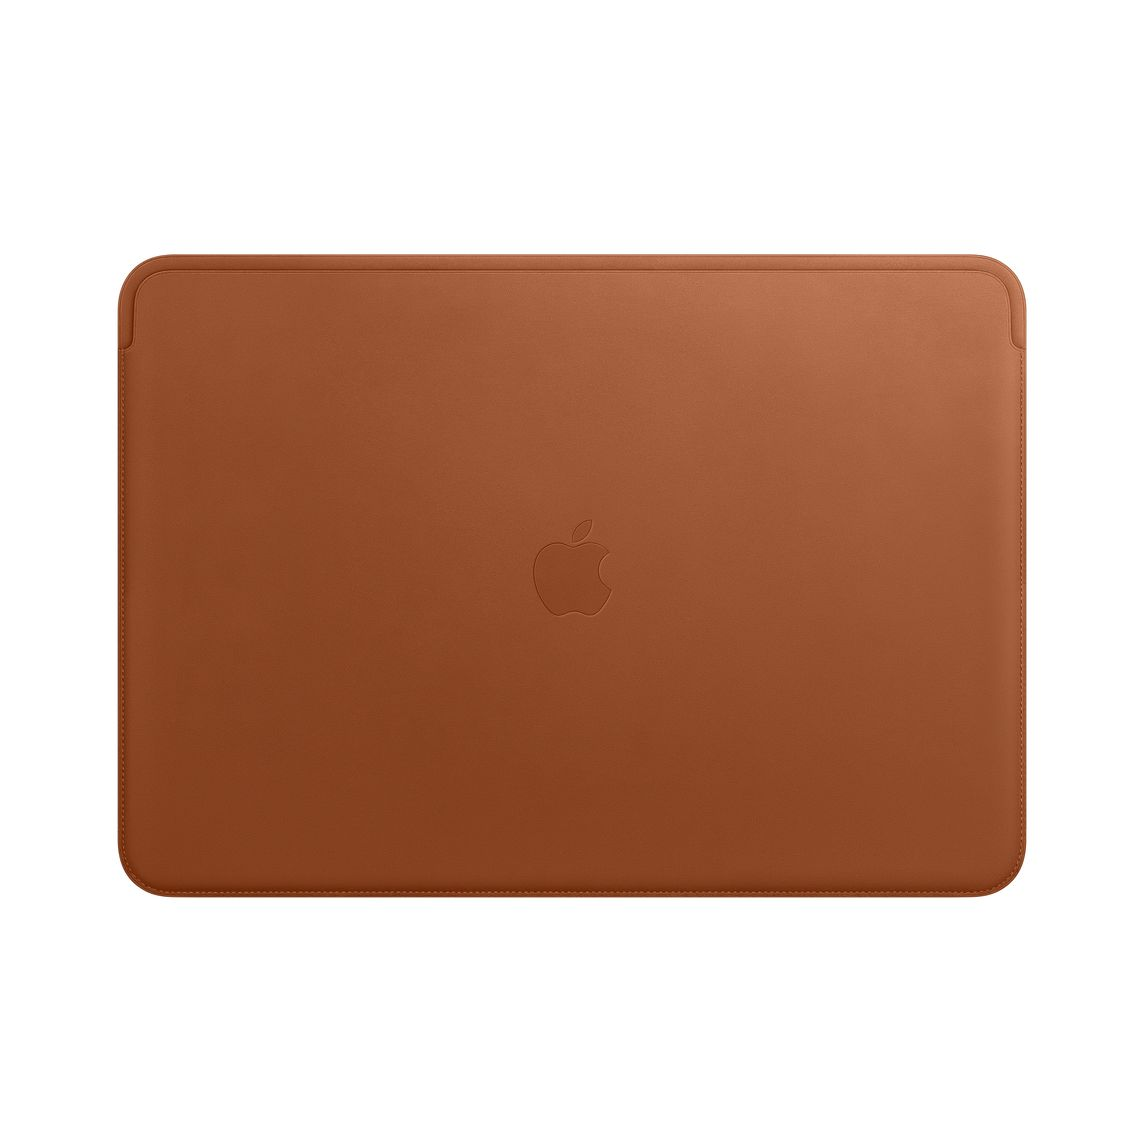 huge selection of e2c20 71701 Leather Sleeve for 15-inch MacBook Pro – Saddle Brown